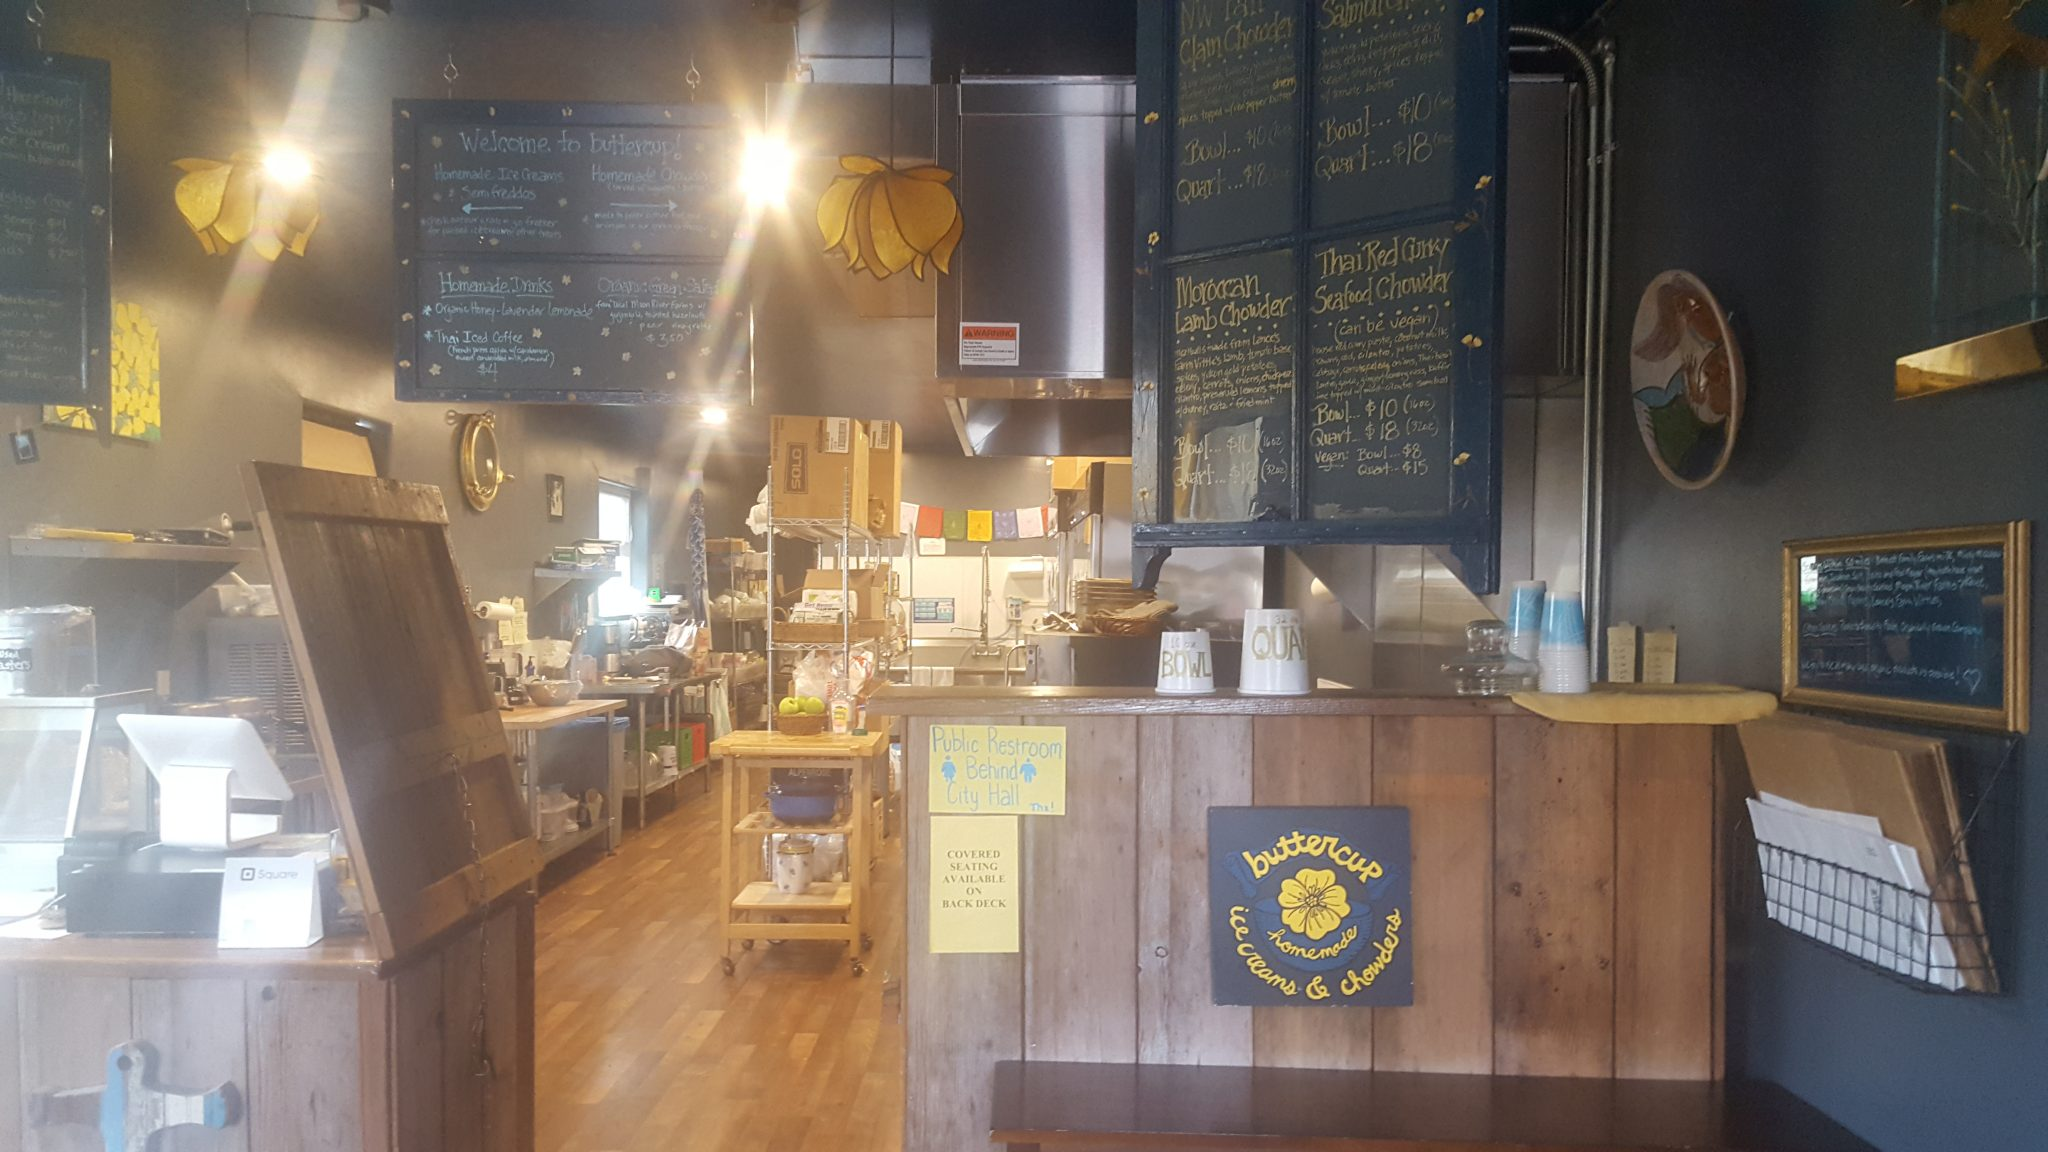 Inside of the Buttercup shop—counter for ordering with menus written on chalkboards overhead